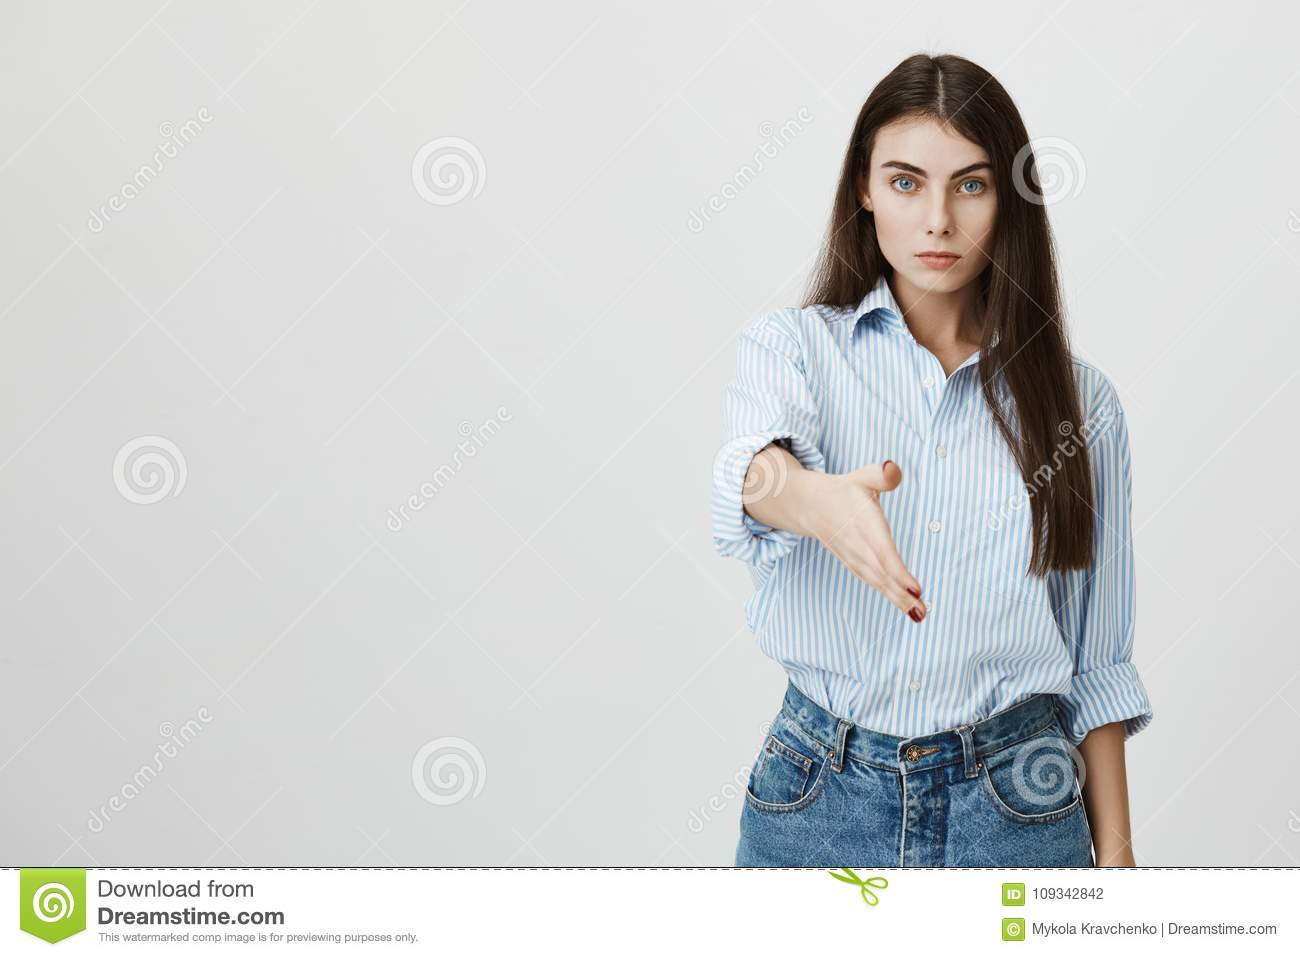 Serious Looking European Woman Stretching Hand To Greet Somebody